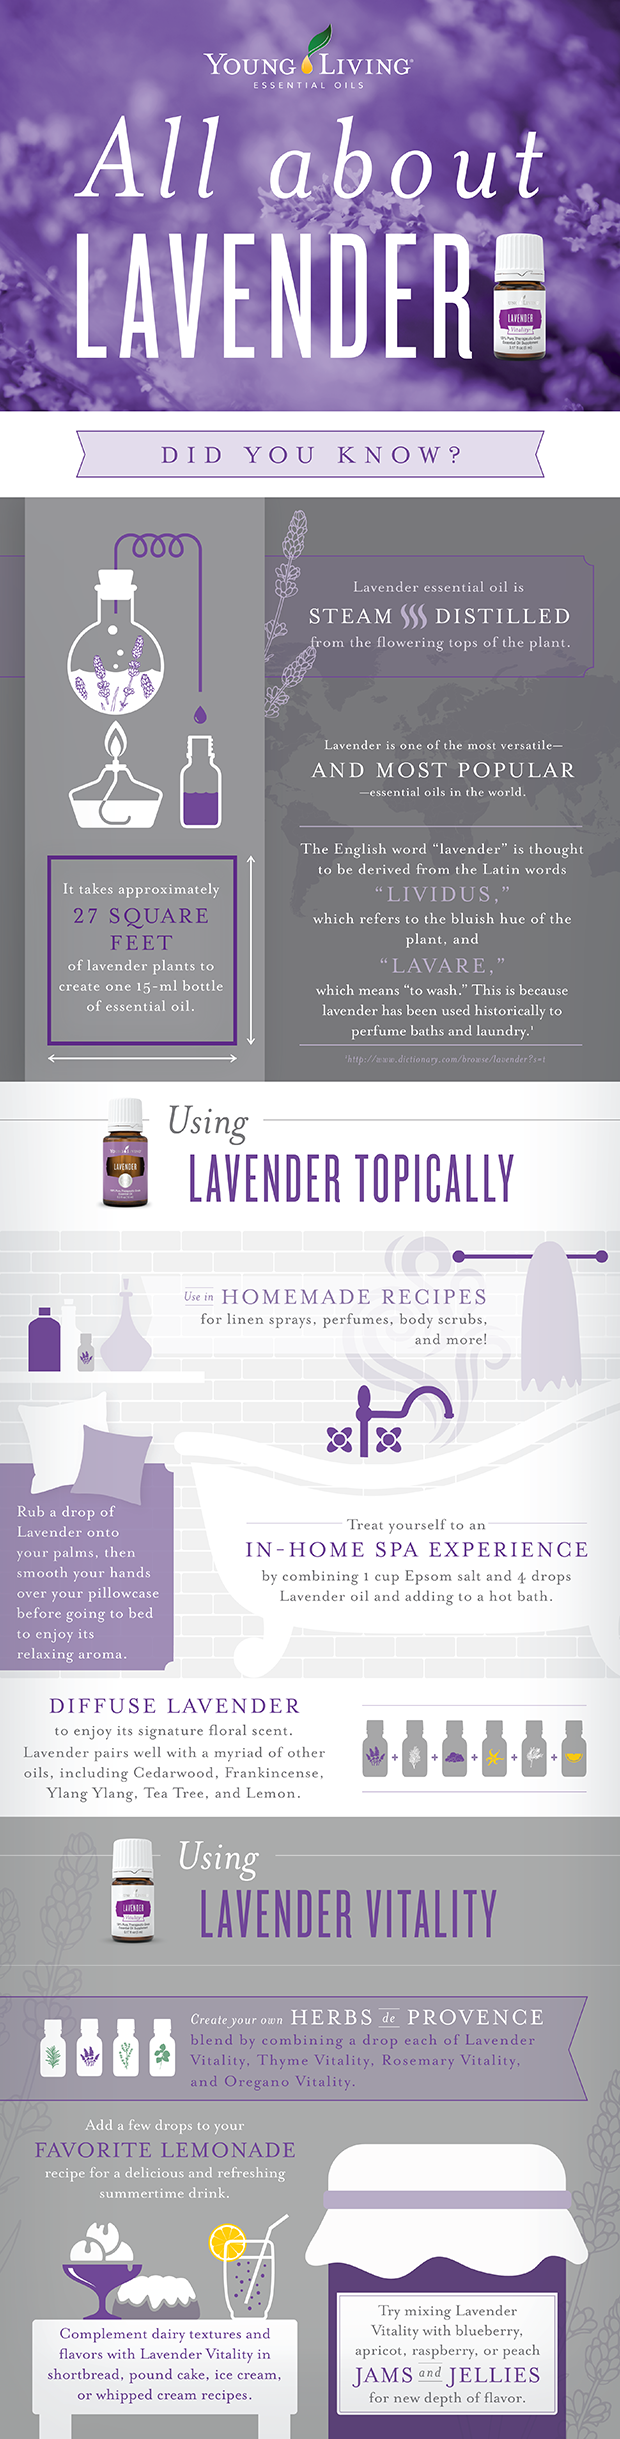 All About Lavender! | Decorchick!®